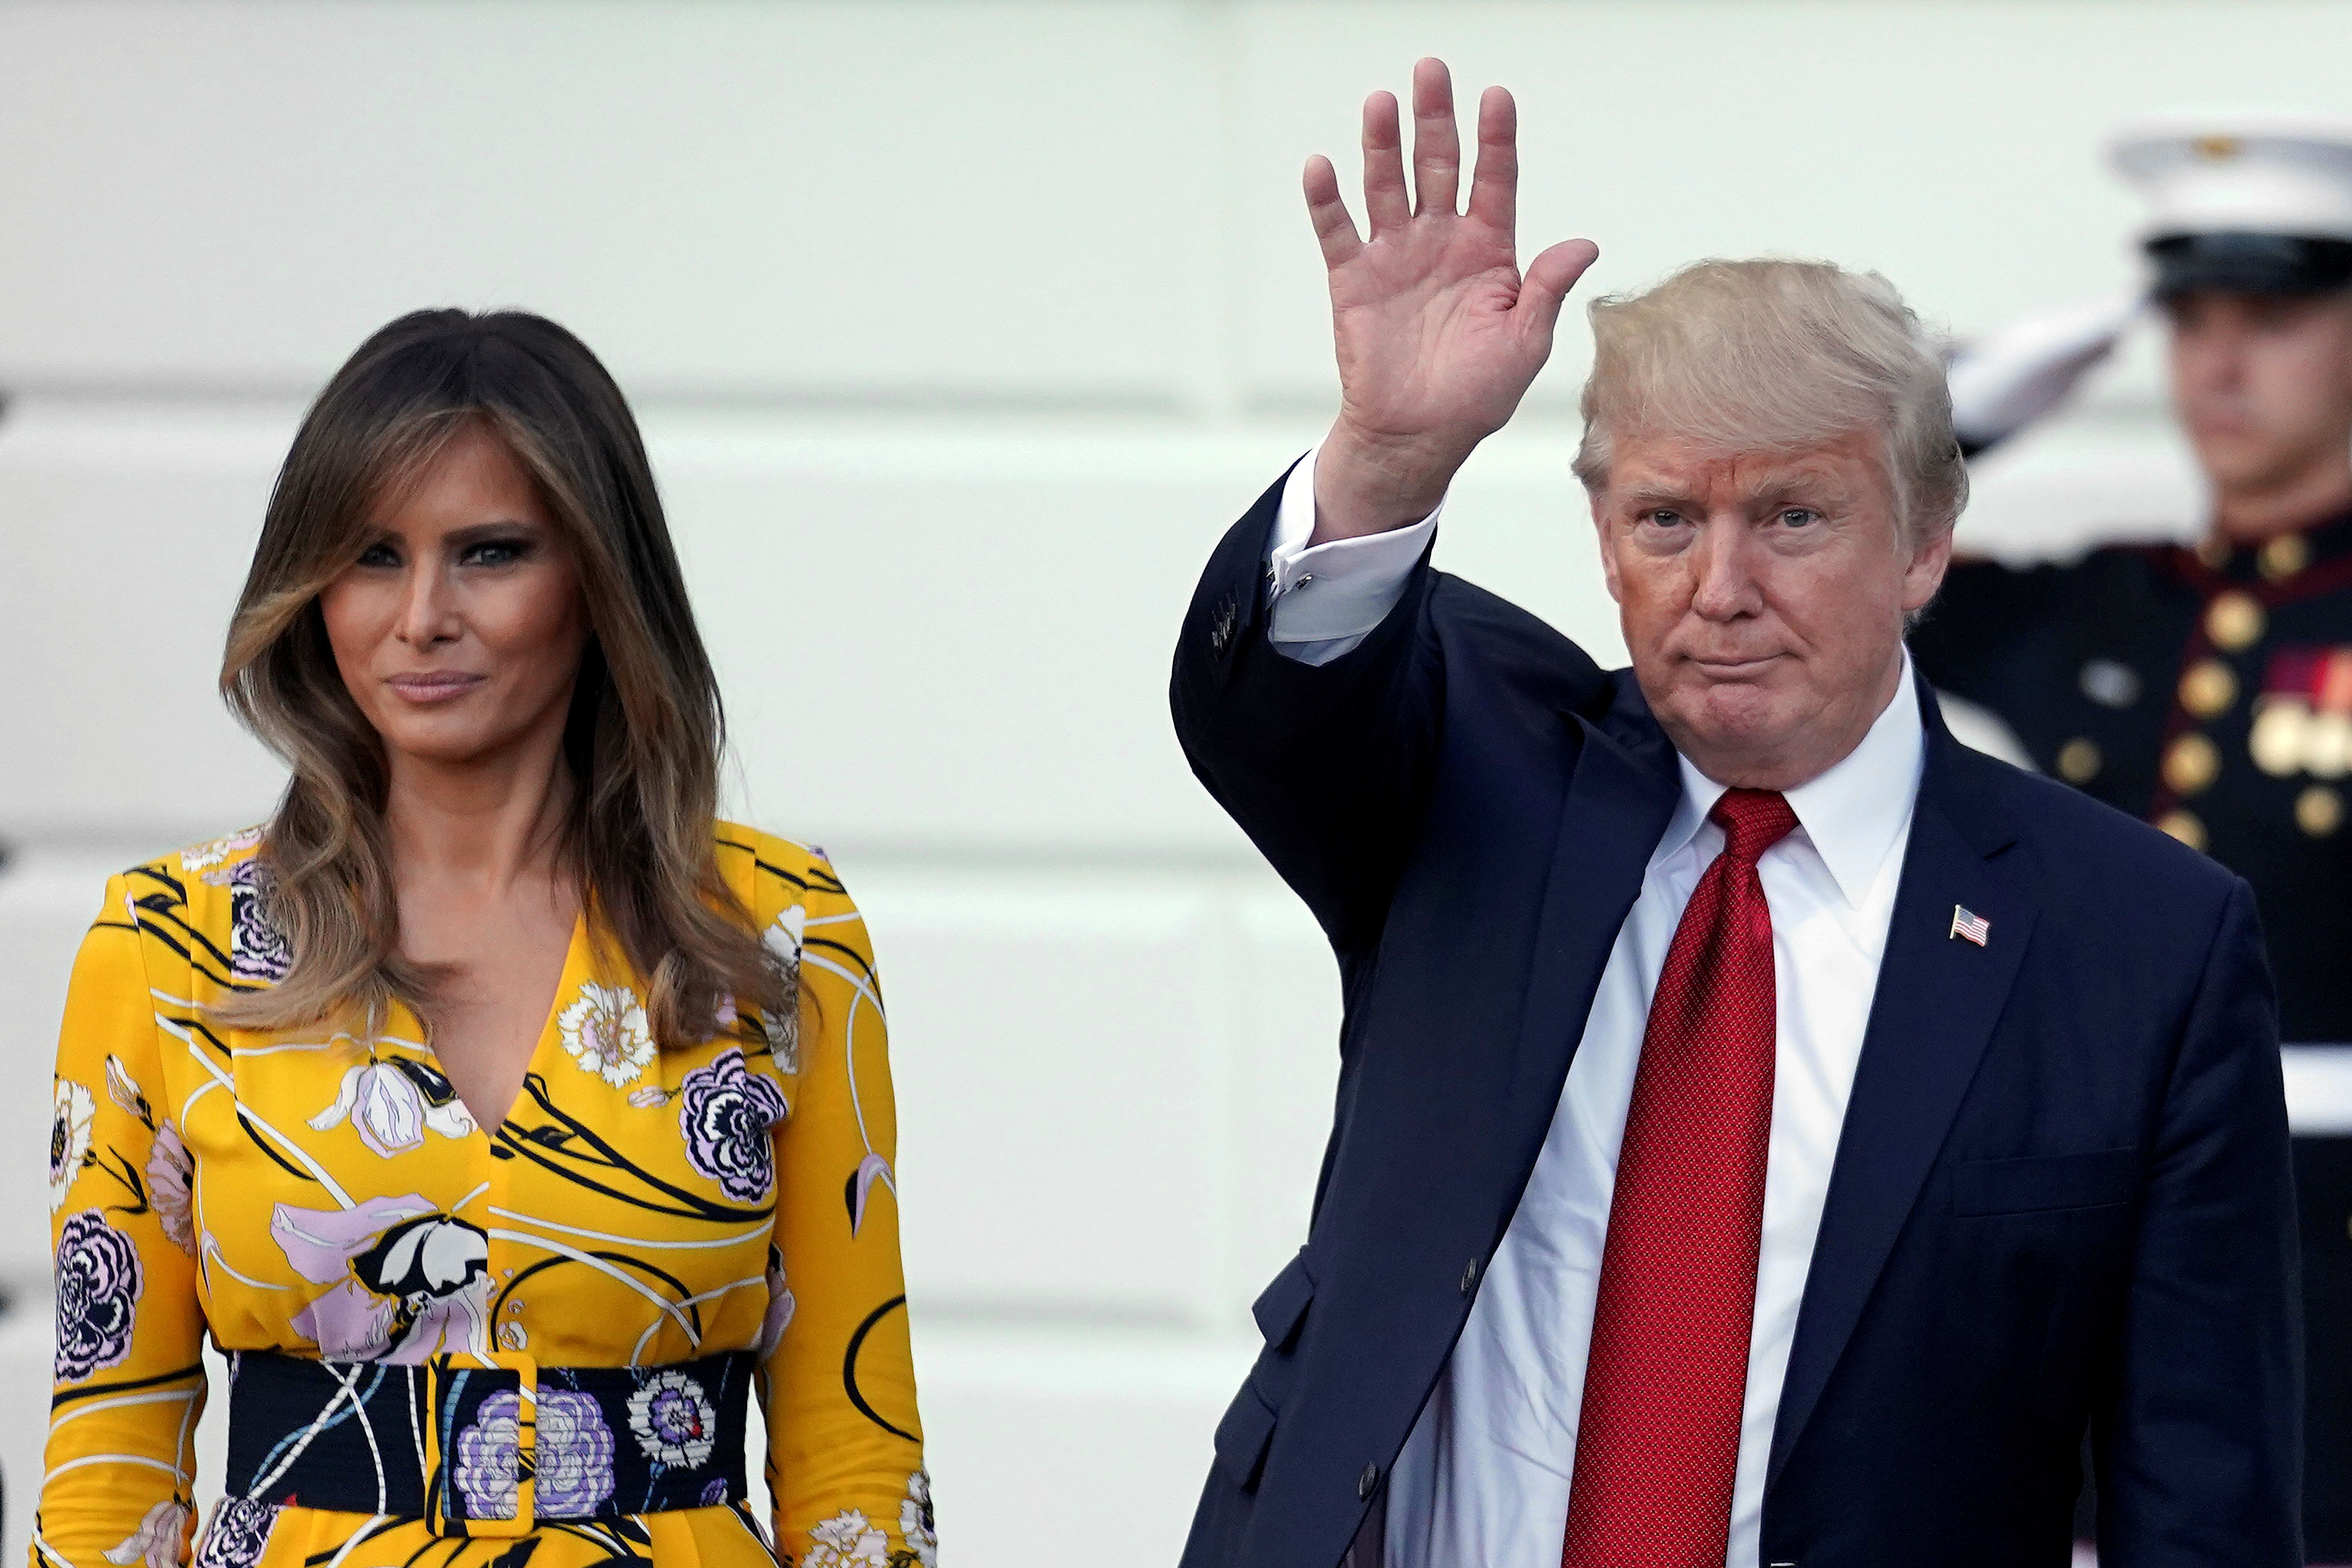 First lady Melania Trump and President Donald Trump.